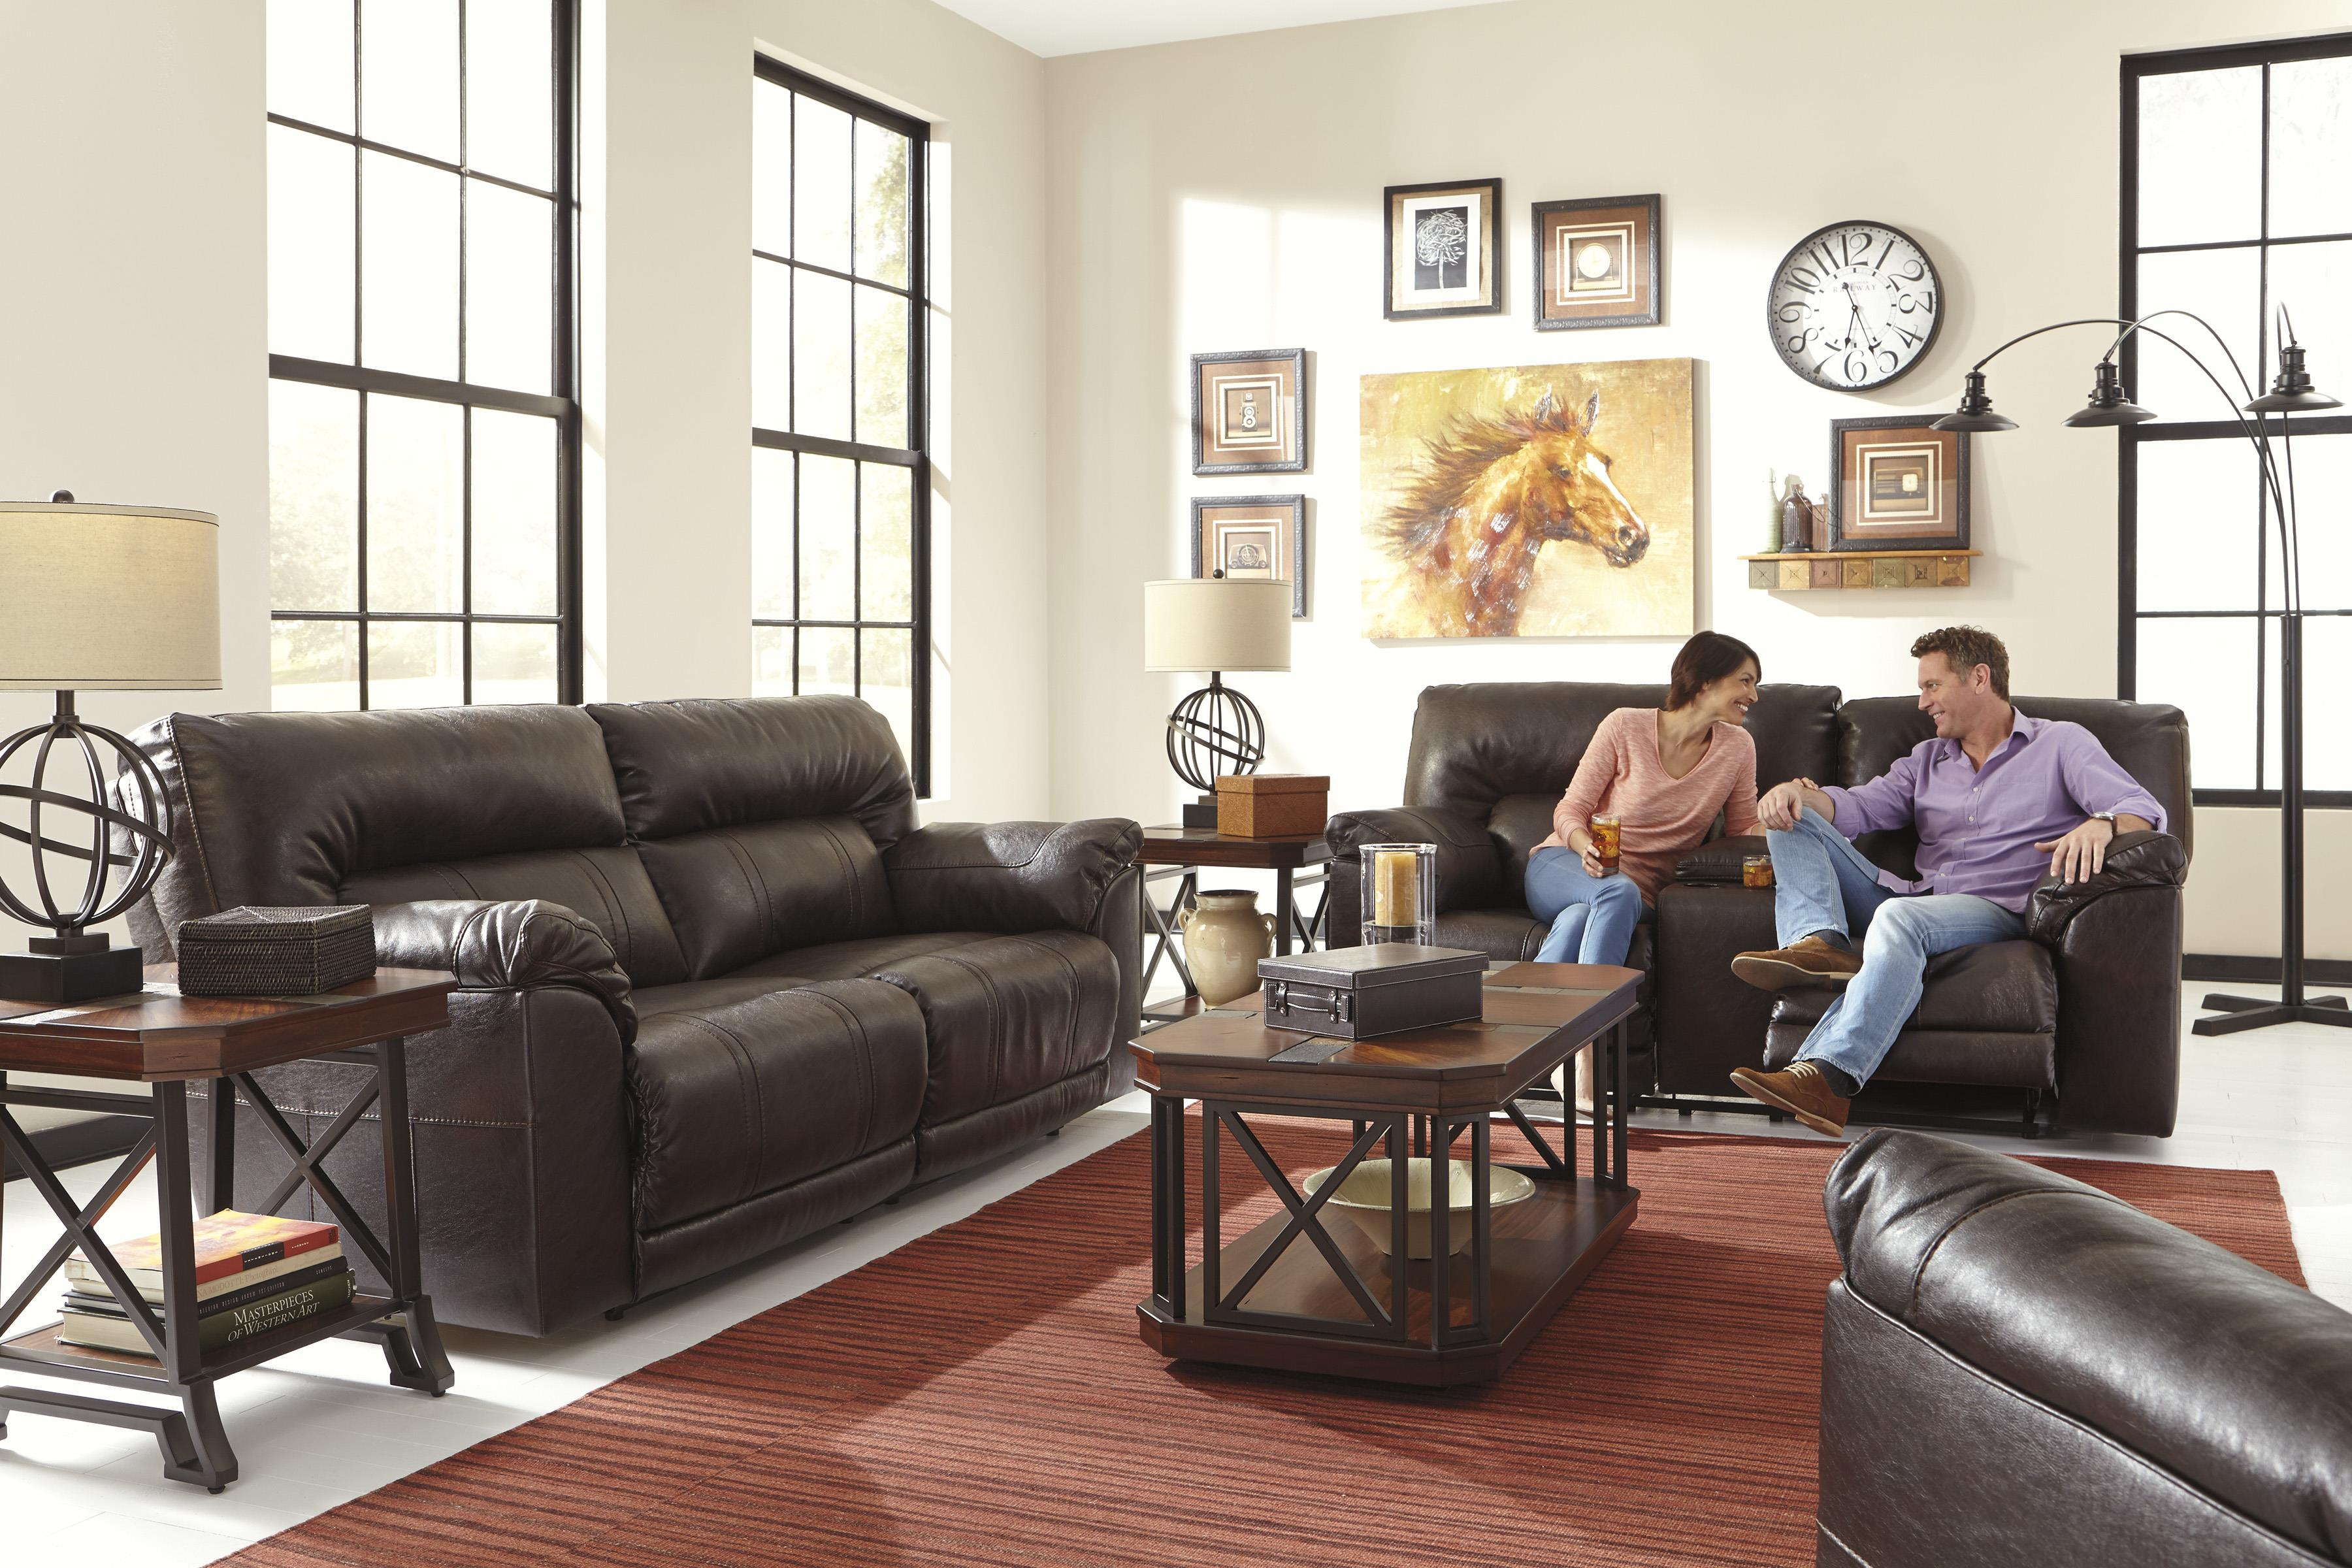 Benchcraft Barrettsville DuraBlend® Reclining Living Room Group - Item Number: 47301 Living Room Group 3